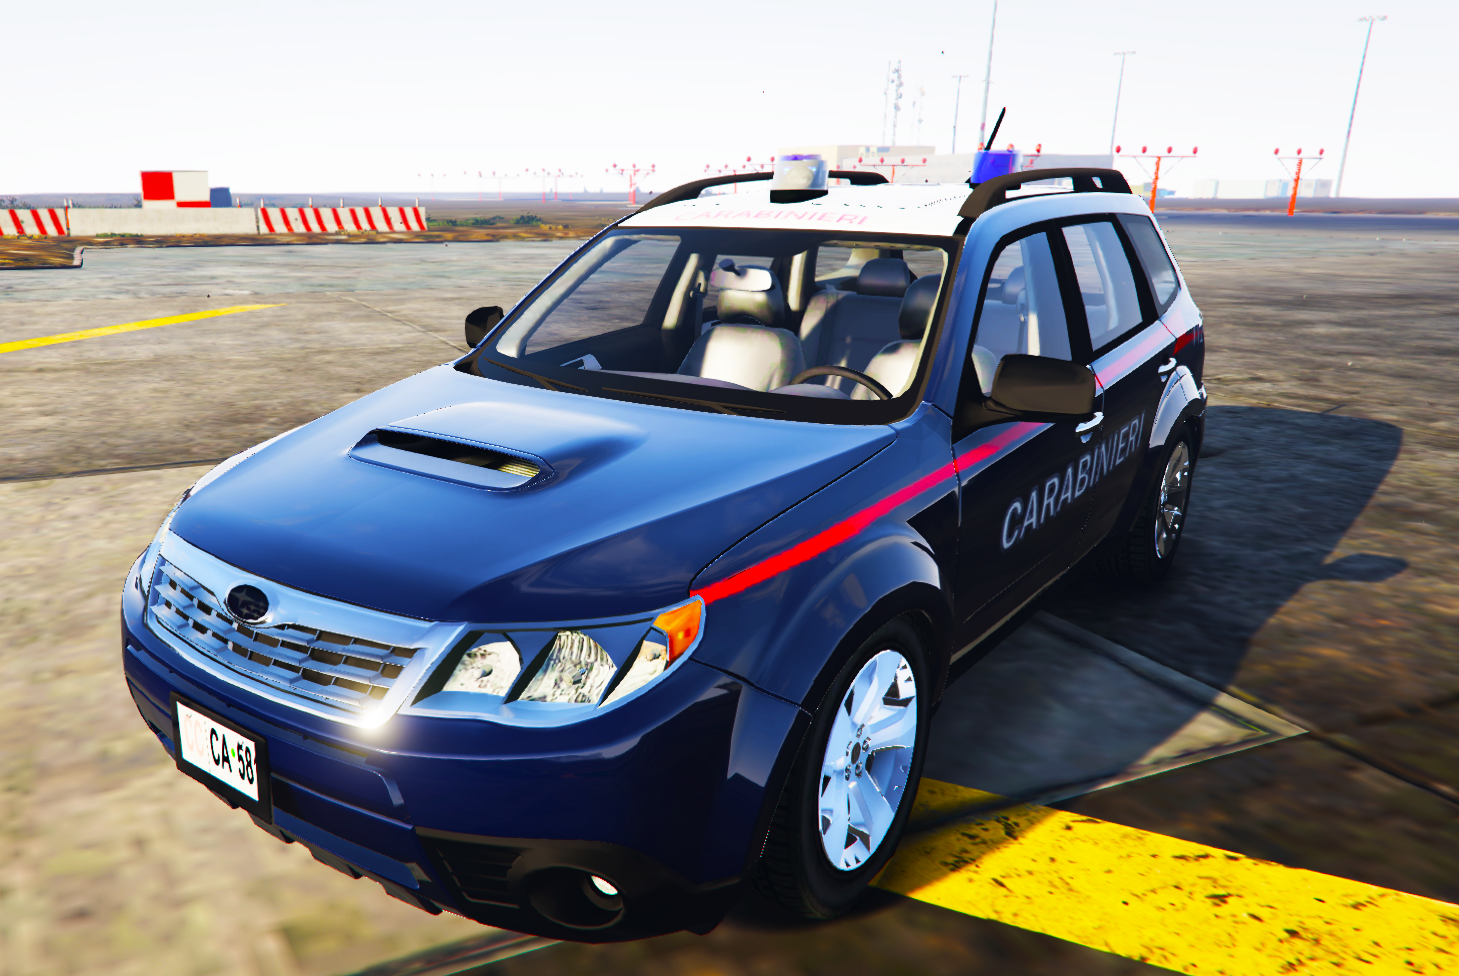 Subaru forester carabinieri gta5 for Subaru forester paint job cost